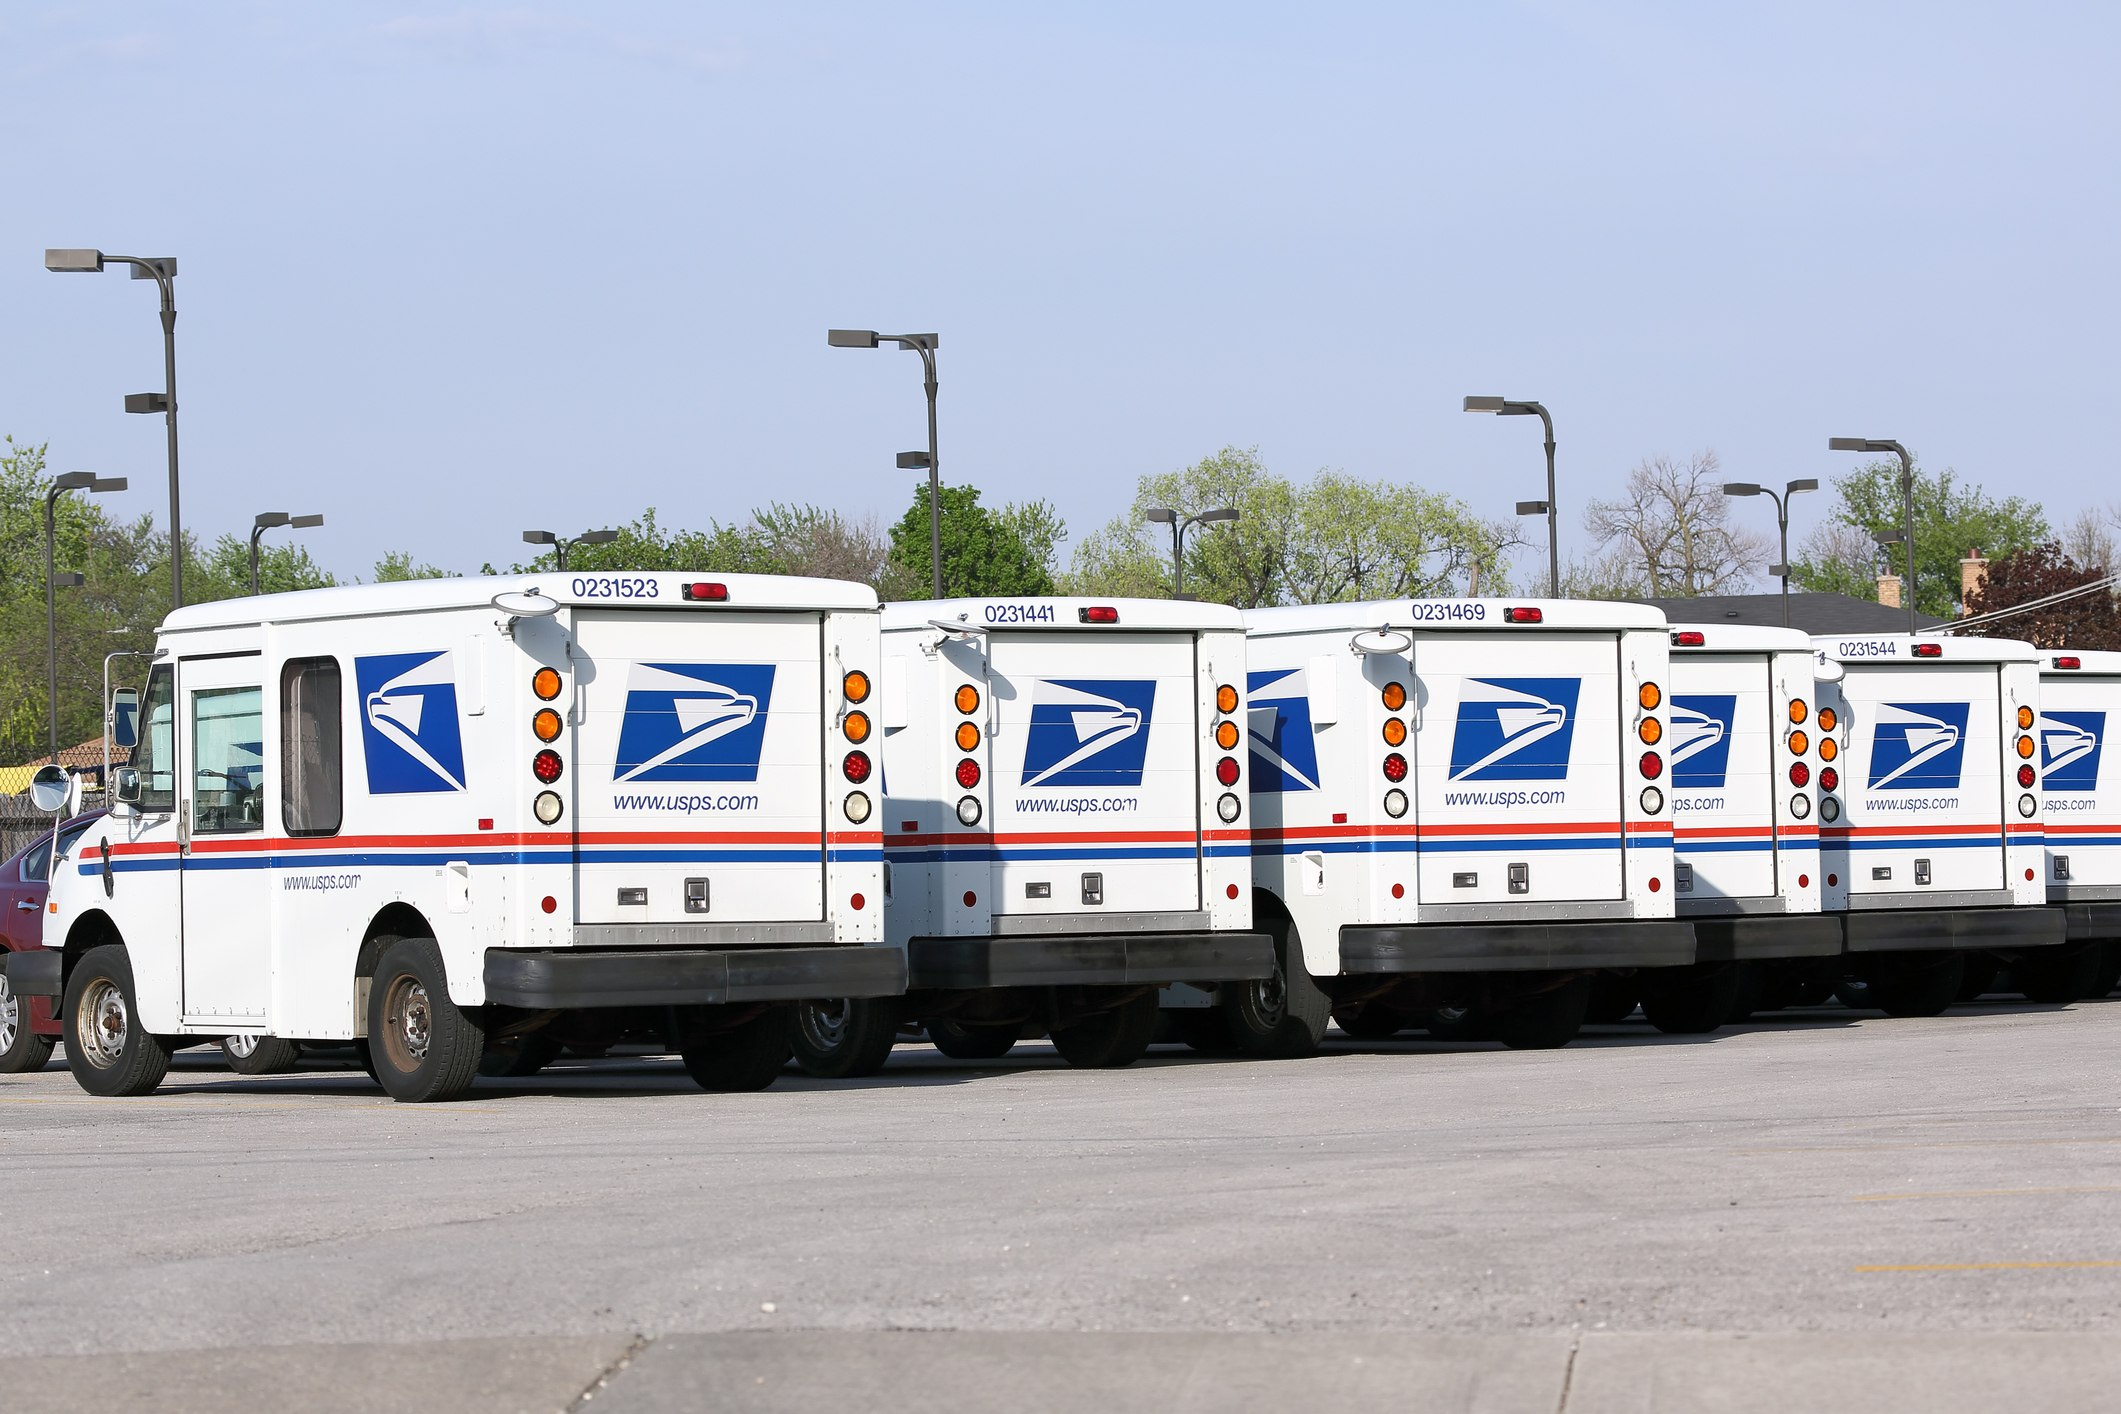 Fleet of USPS mail delivery trucks